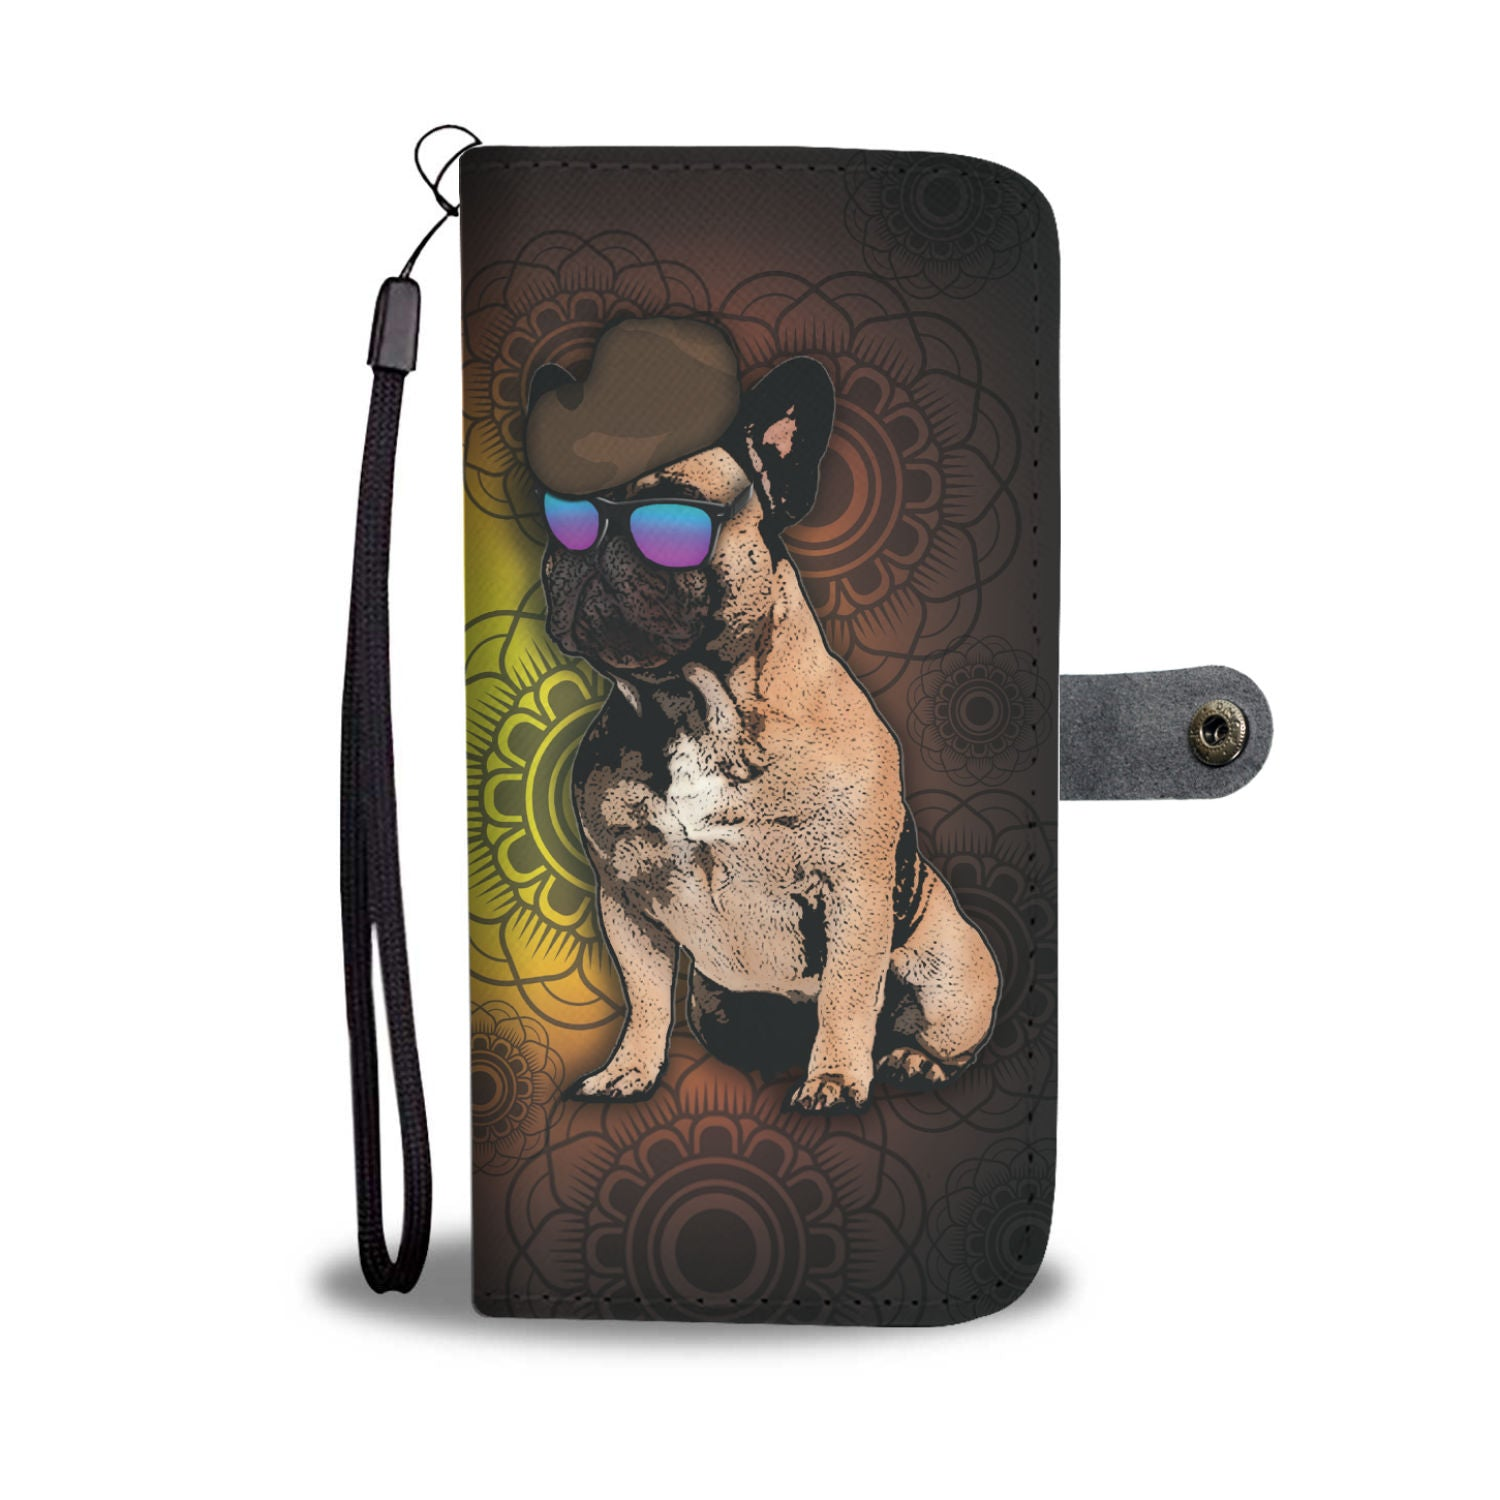 French Bulldog Phone Case Wallet - Brown